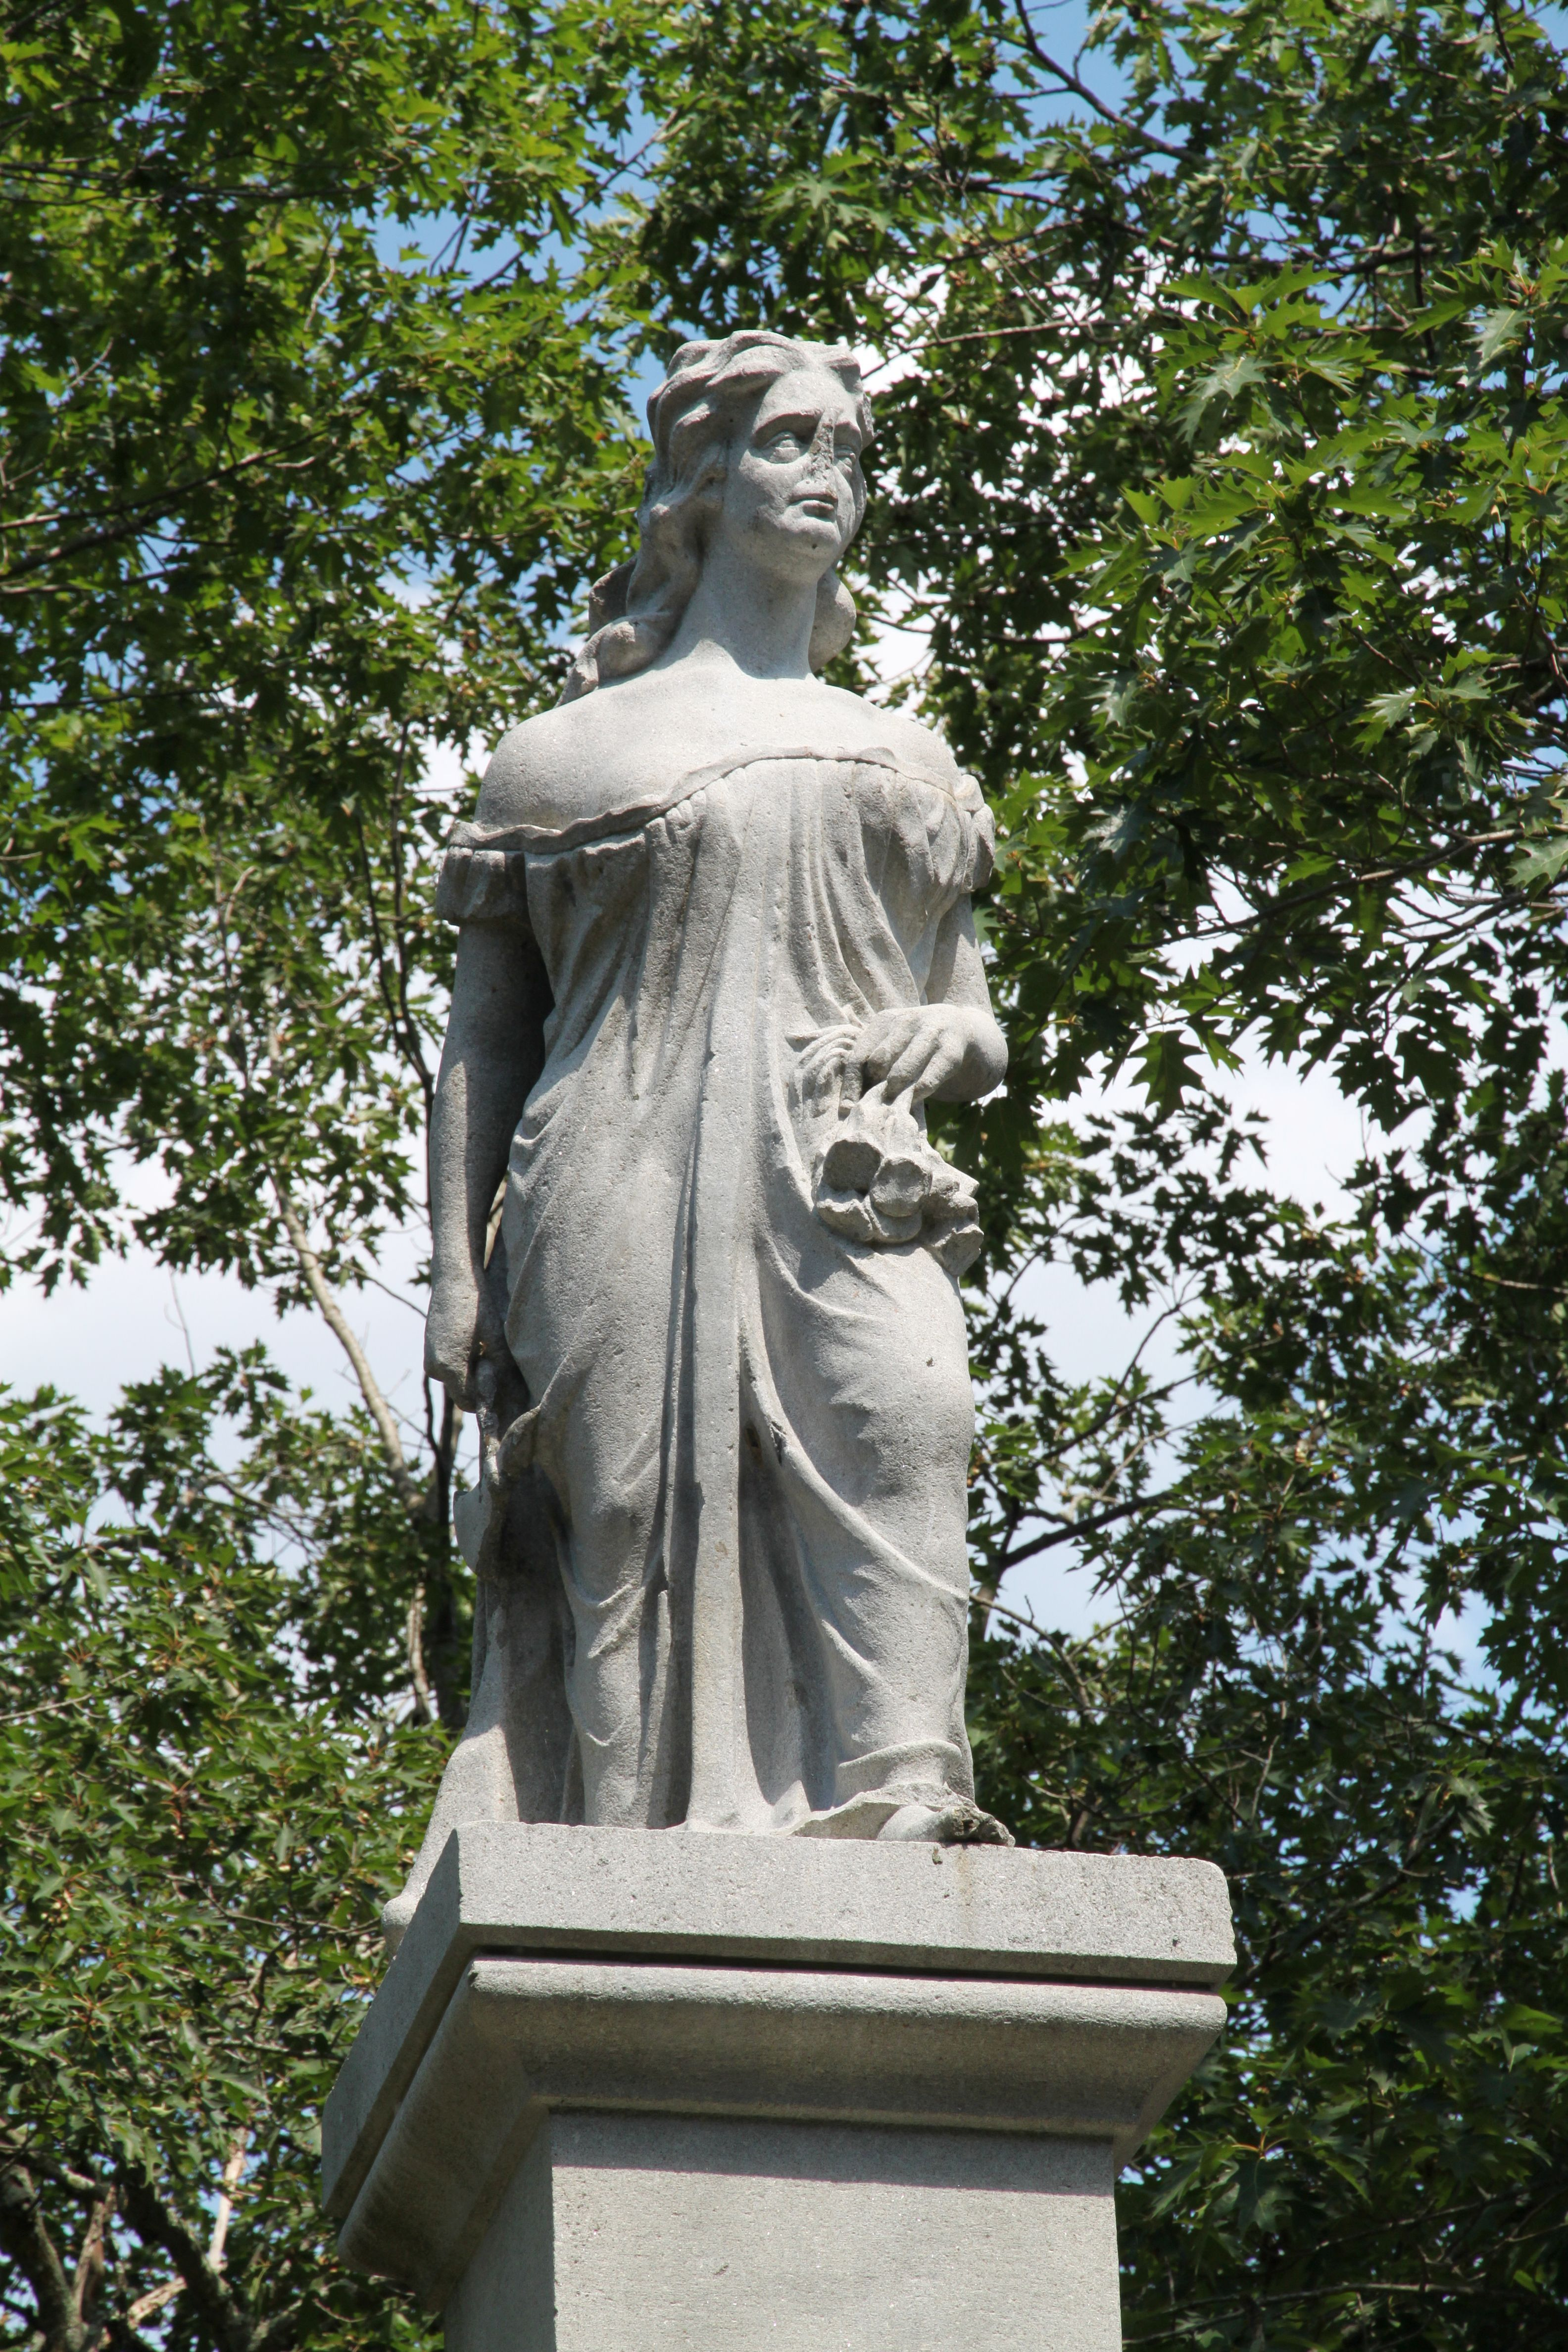 In 1874 this monument was erected in her memory on the site of the massacre, believed to be the first statue of a woman erected in this country.  The first Duston memorial actually executed was sculpted by William Andrews, a marble worker from Lowell, Massachusetts. It was erected in 1874 on the island in Boscawen, New Hampshire, where Duston killed her captors.  In her right hand is a hatchet, in her left a mass of Indian scalps. Vandals have shot off Hannah's nose.